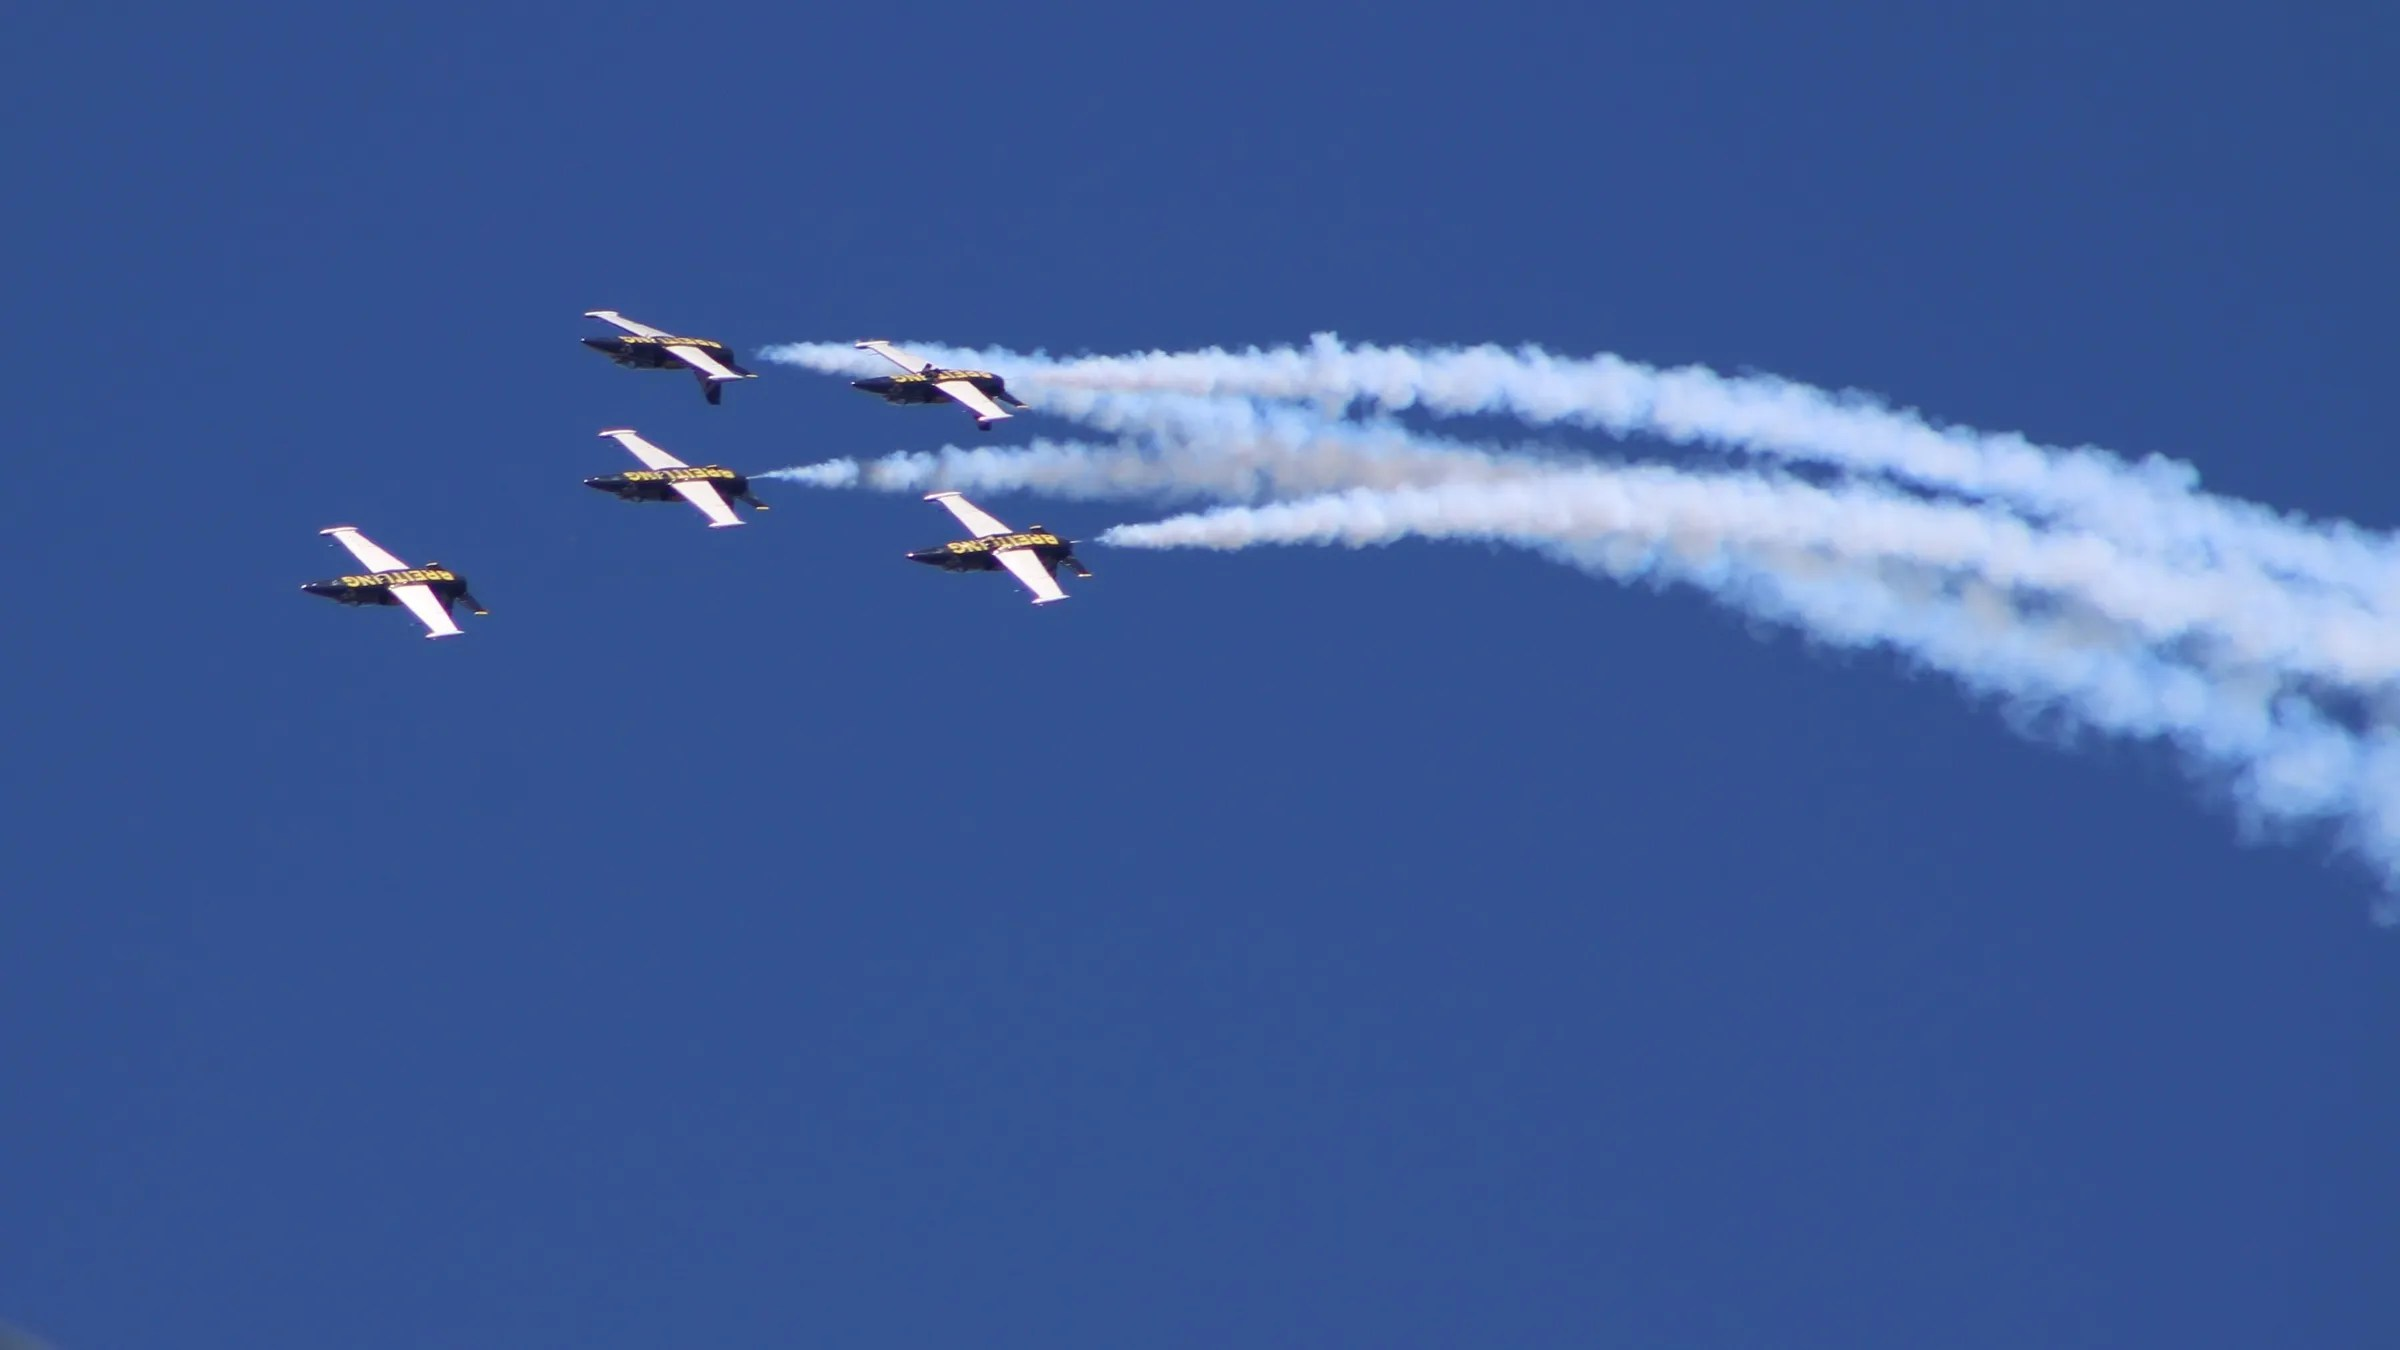 Breitling Jet Team over the backyard